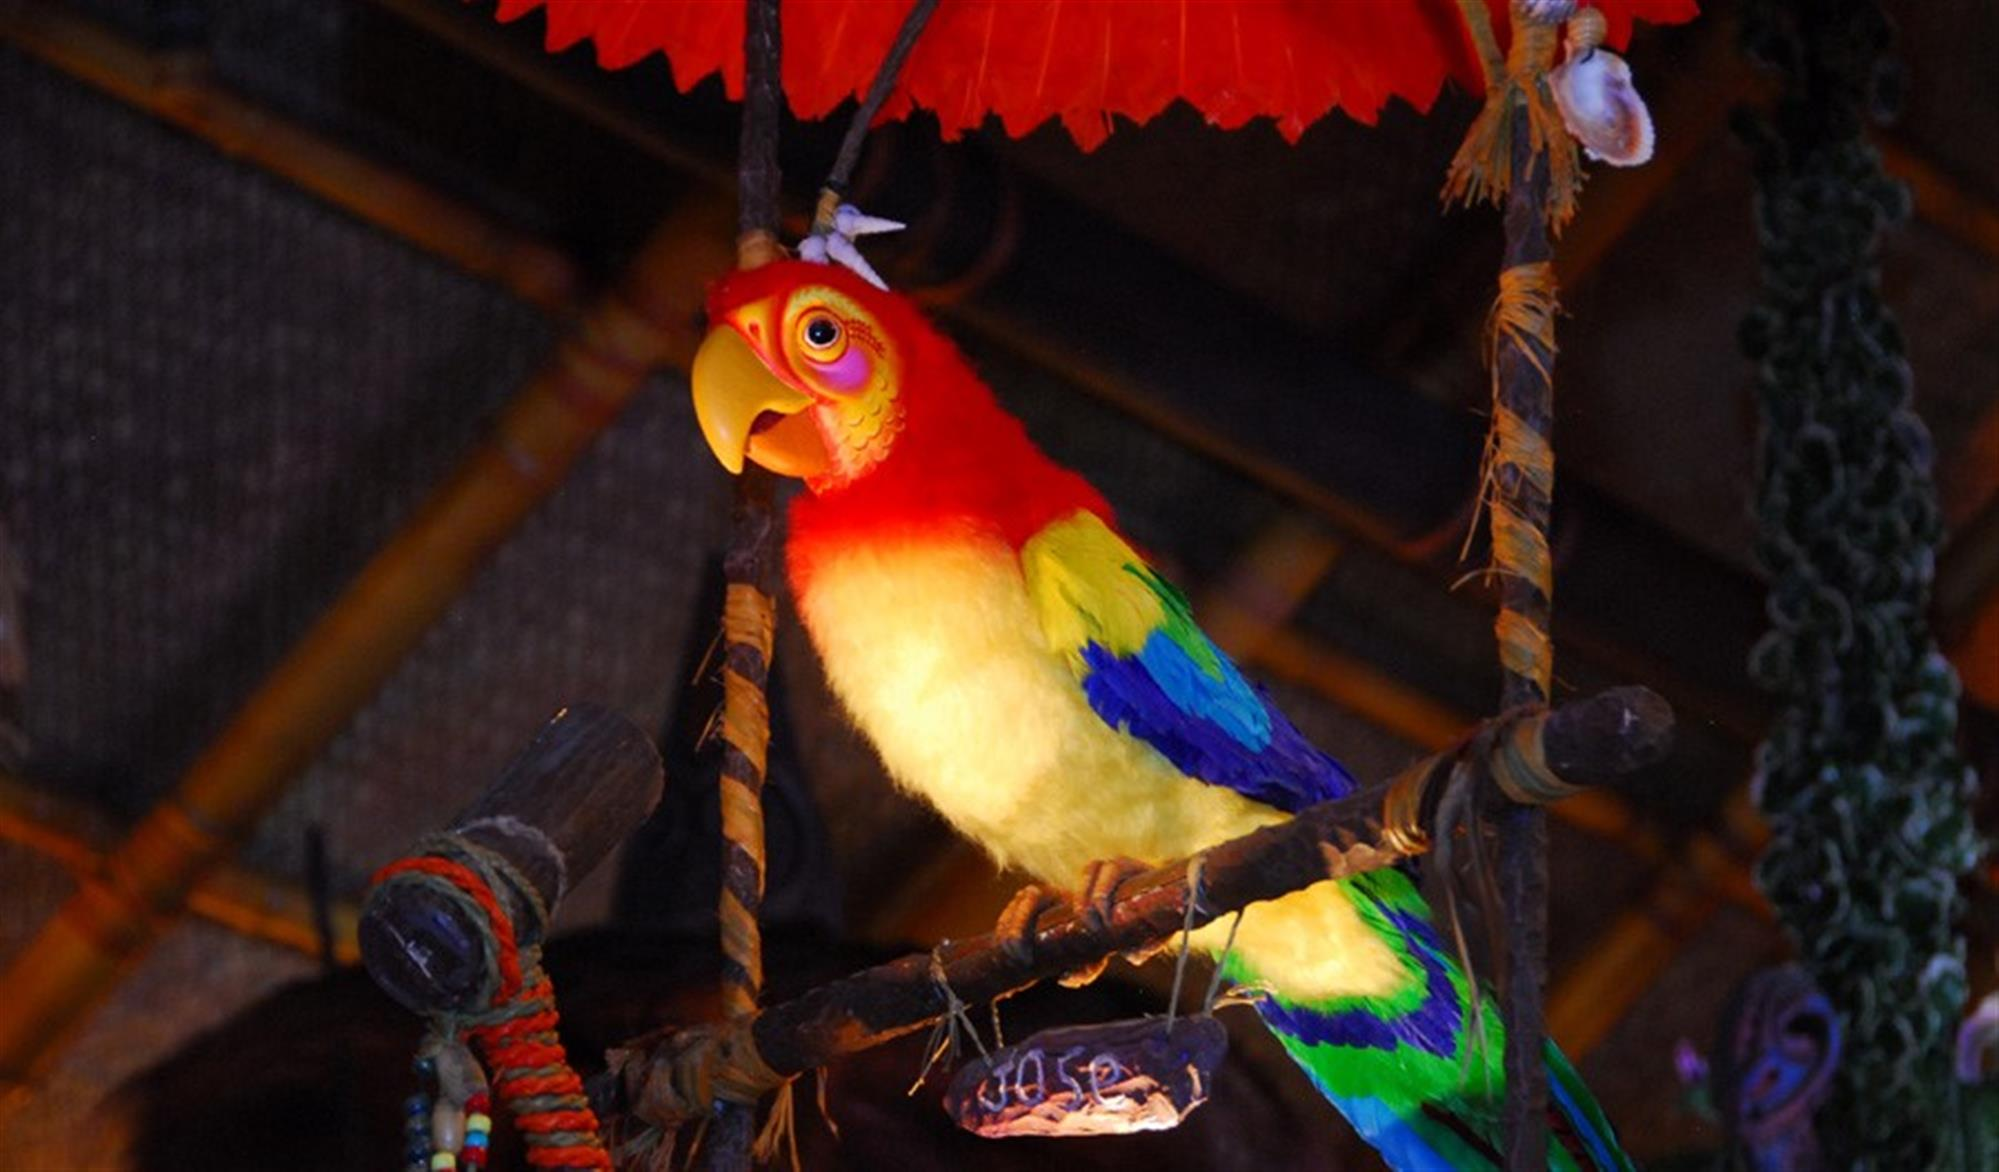 walt disney s enchanted tiki room magic kingdom laughingplace com rh laughingplace com Tiki Room Iago Disney Tiki Room Birds